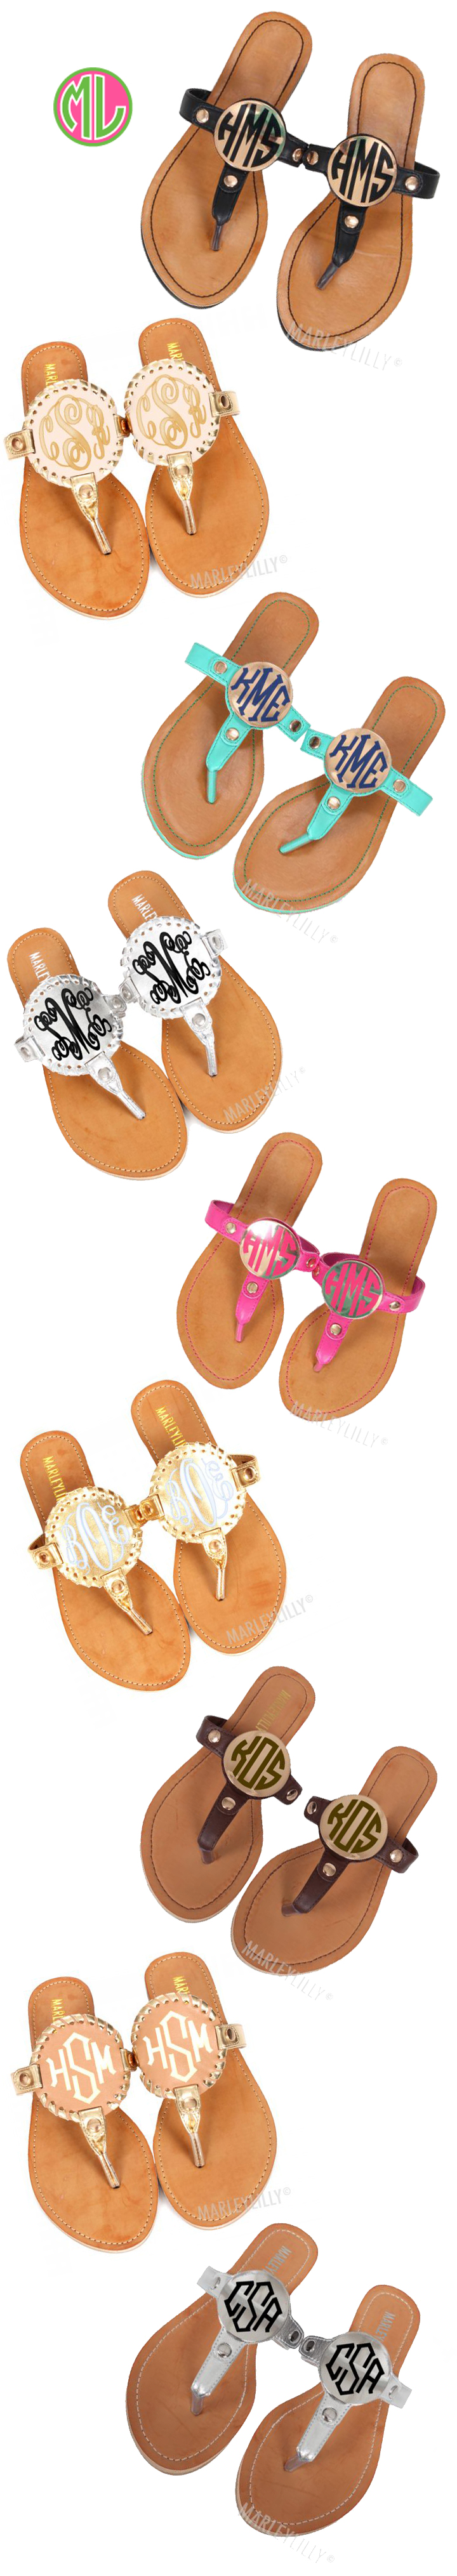 Have you seen these amazing Monogrammed Sandals? They range from $29.99-$44.99 and would be so unique for Mother's Day! Get Mom a pedicure and a personalized set of these with her initials! Or maybe even matching pairs!